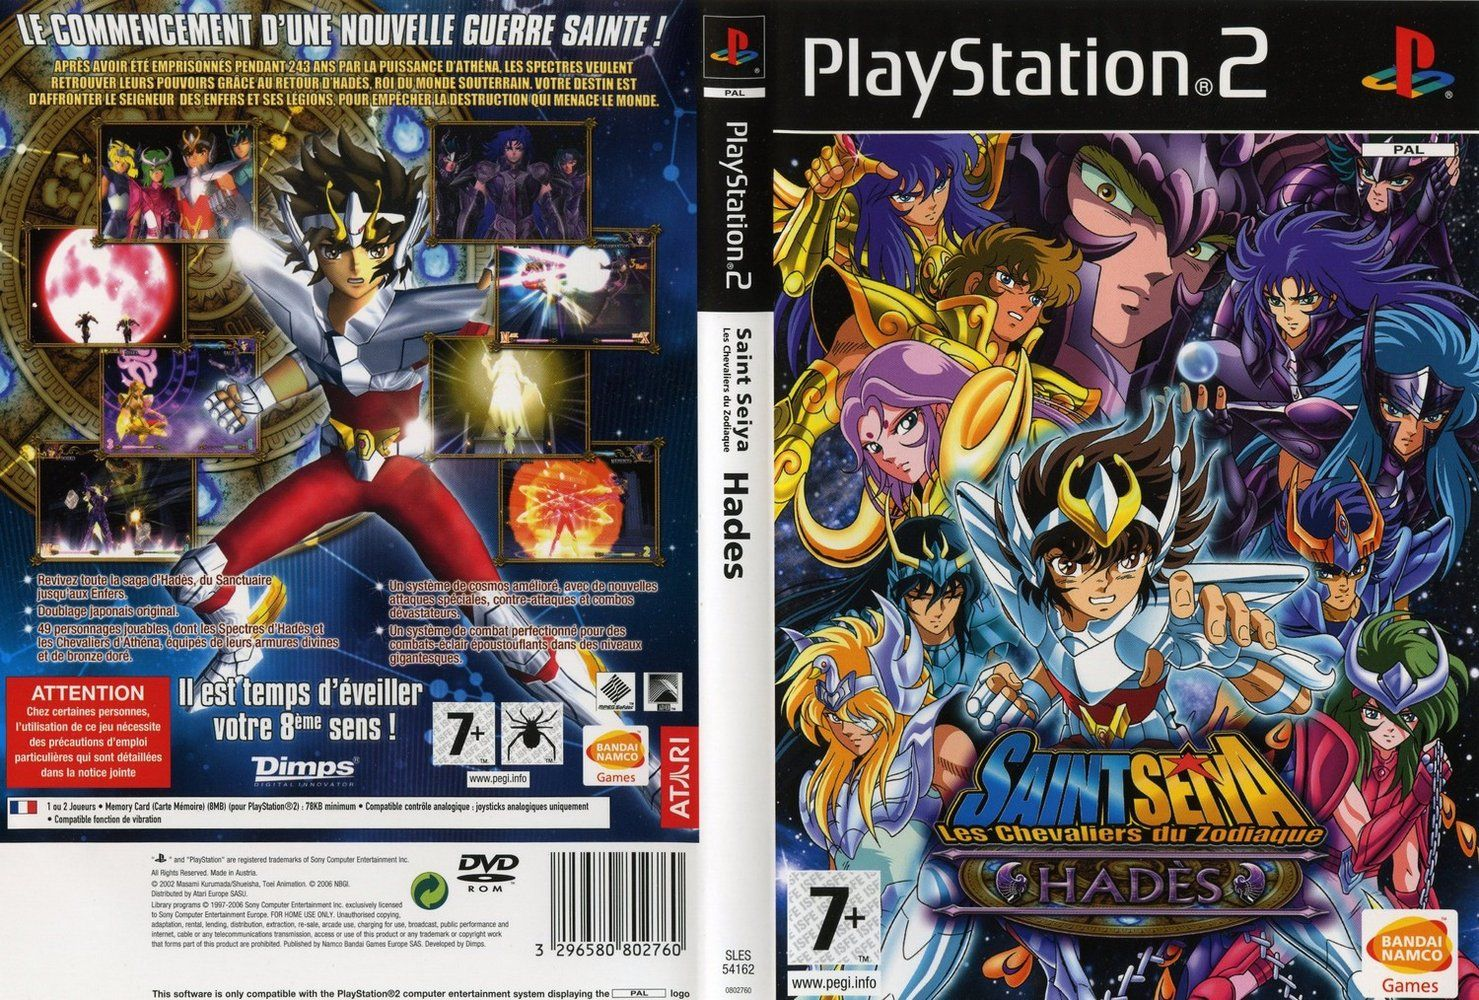 Saint Seiya | The Hades |Emulado PC |MG